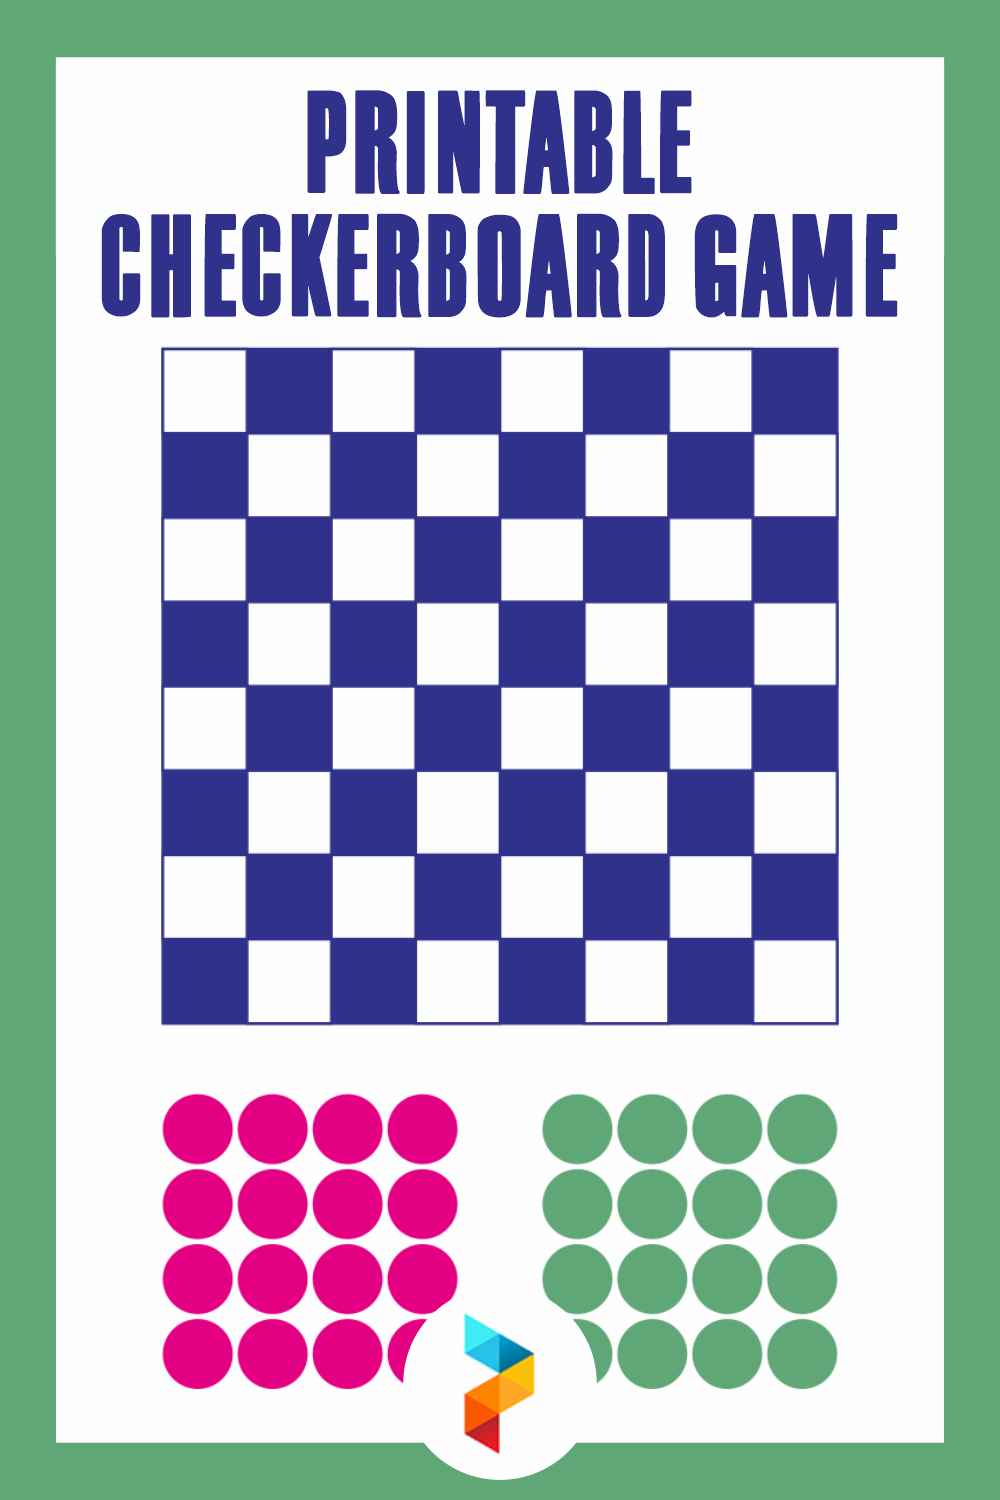 Printable Checkerboard Game